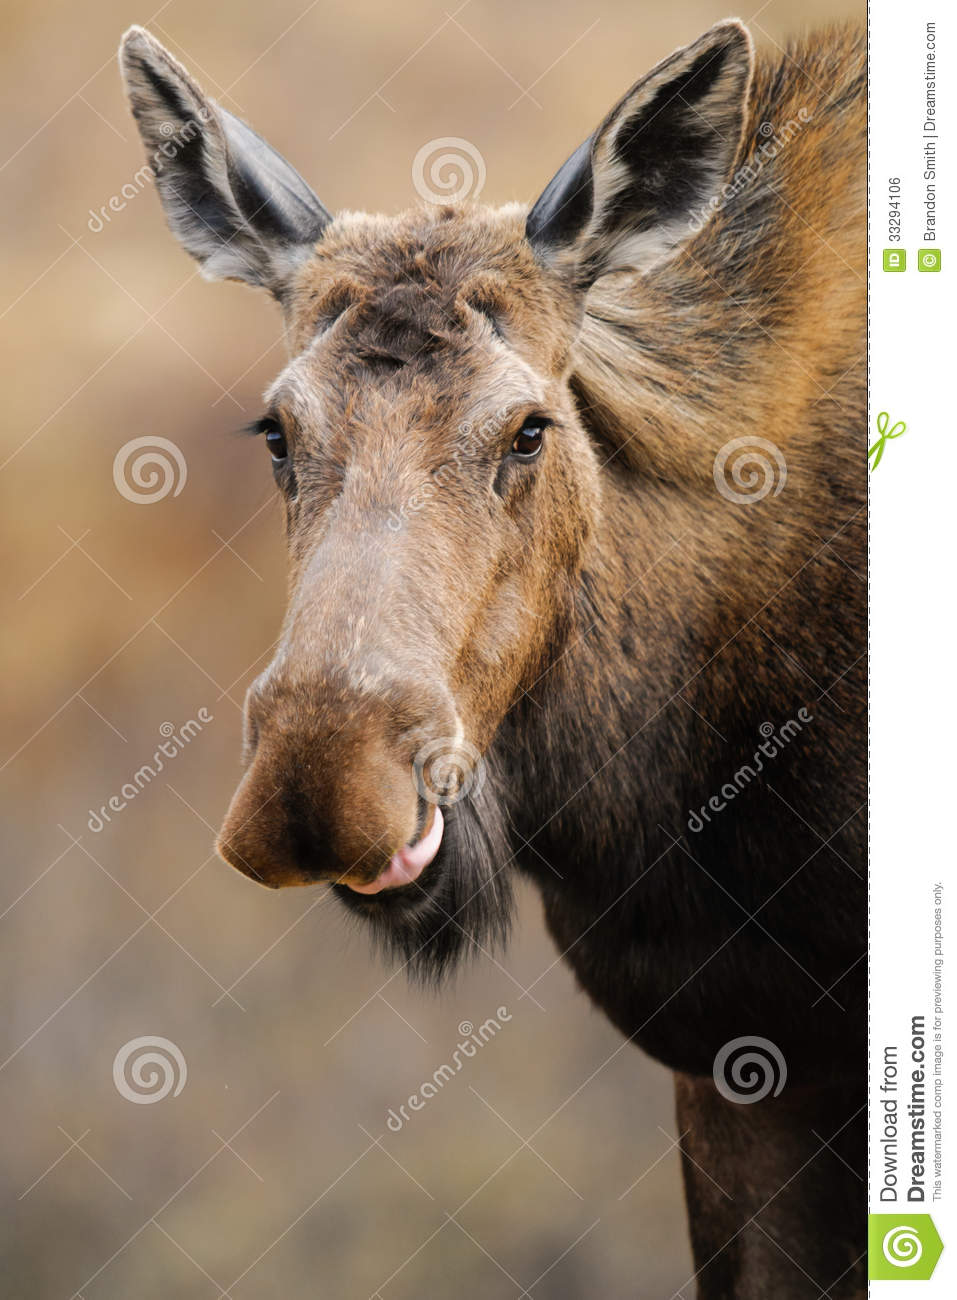 Wild Moose (Alces Alces) Royalty Free Stock Image - Image: 33294106